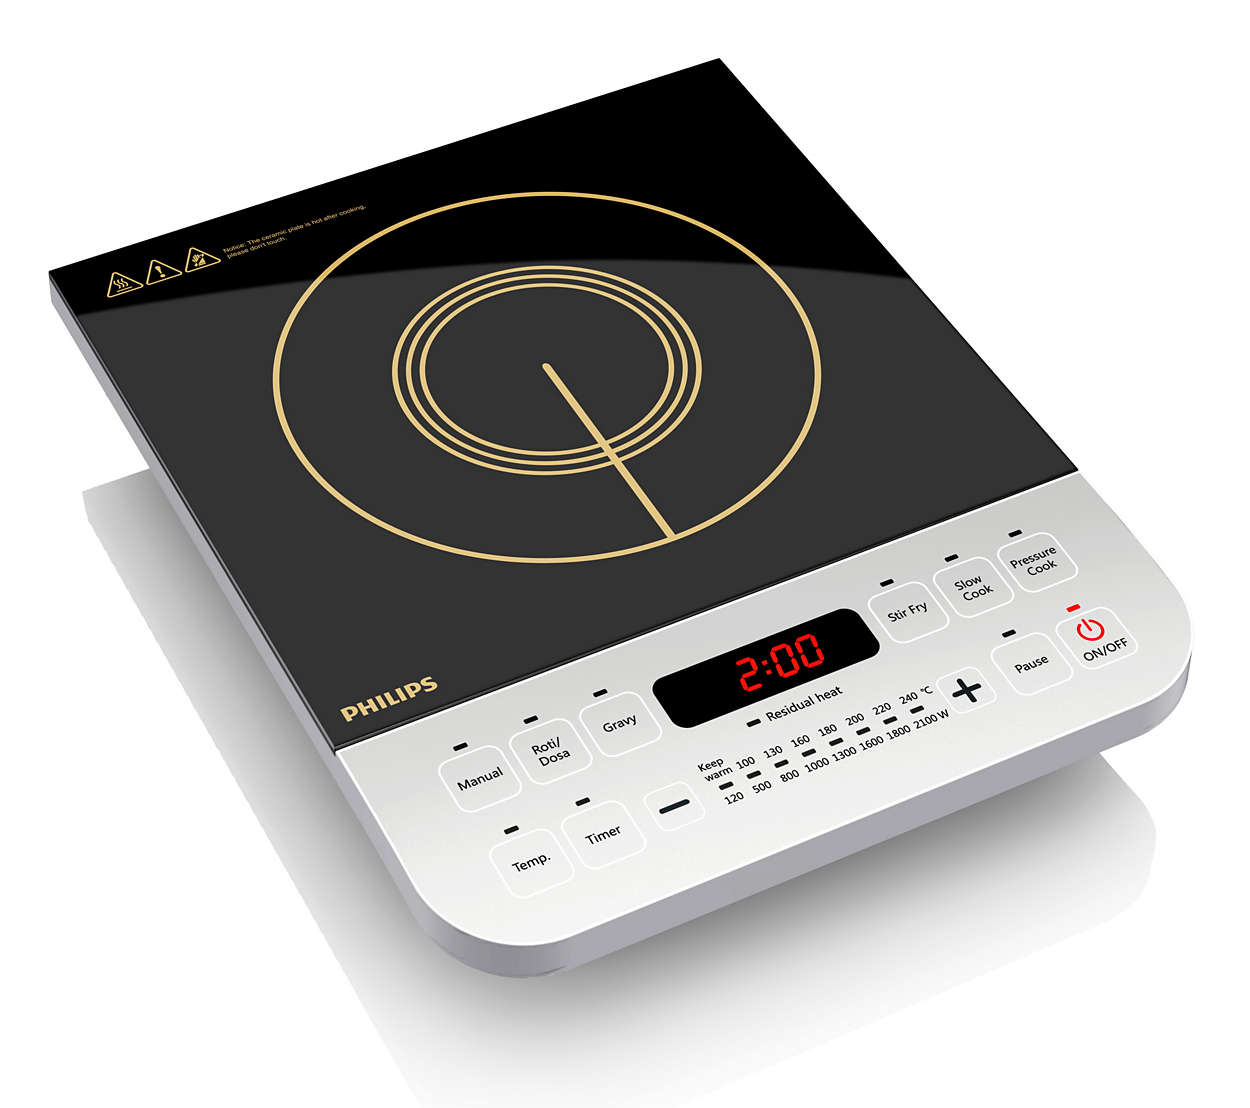 Cooktop BlackFriday and CyberMonday Deals